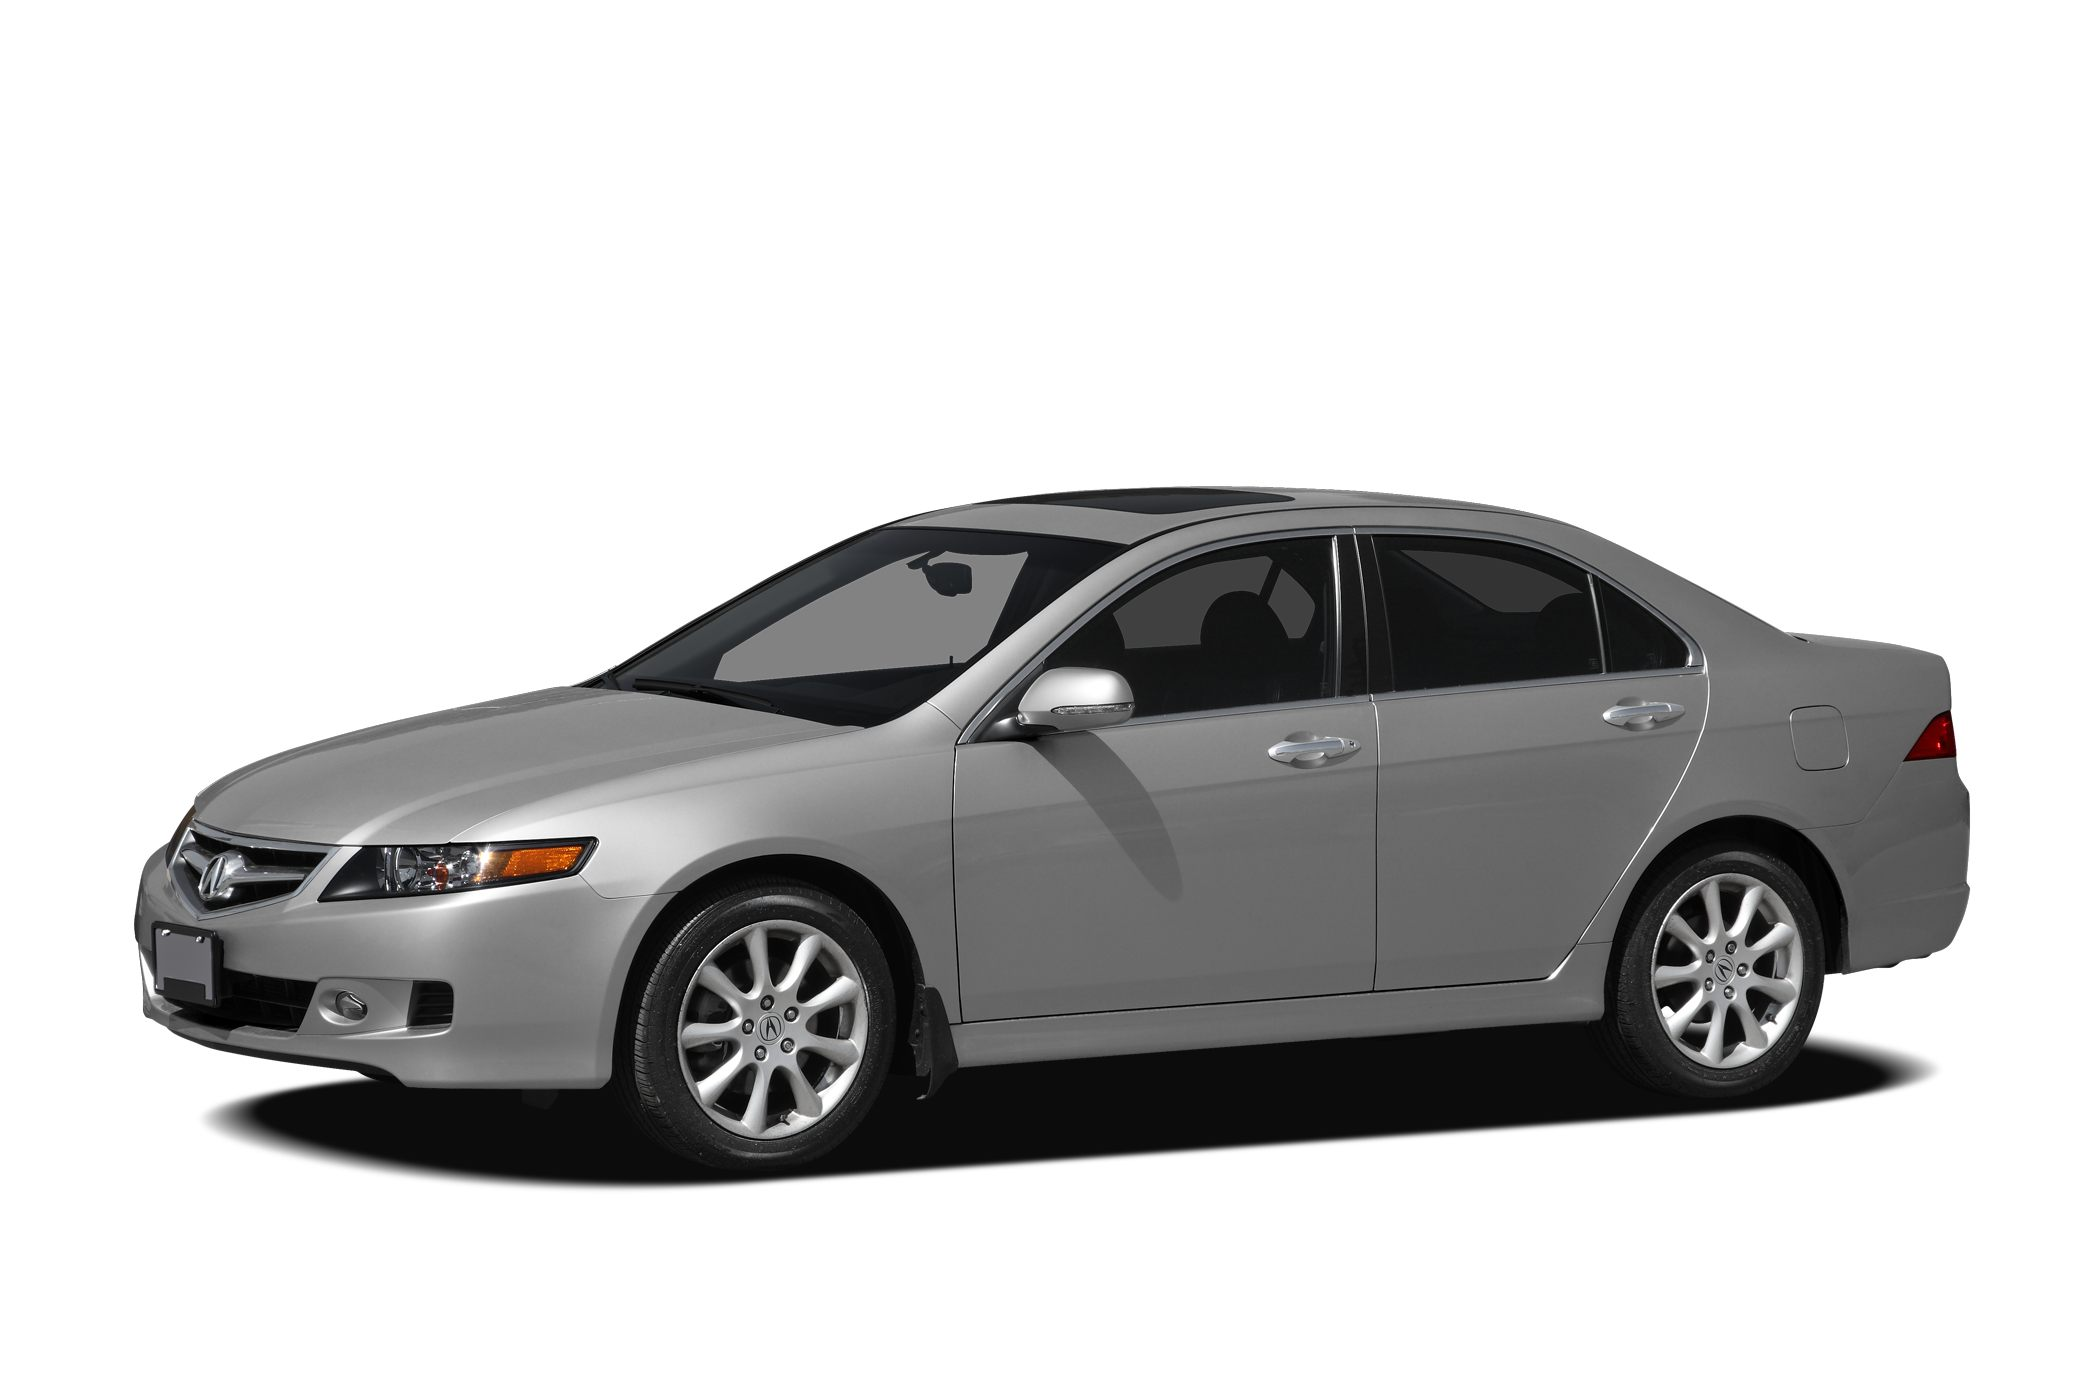 2007 Acura TSX New Car Test Drive